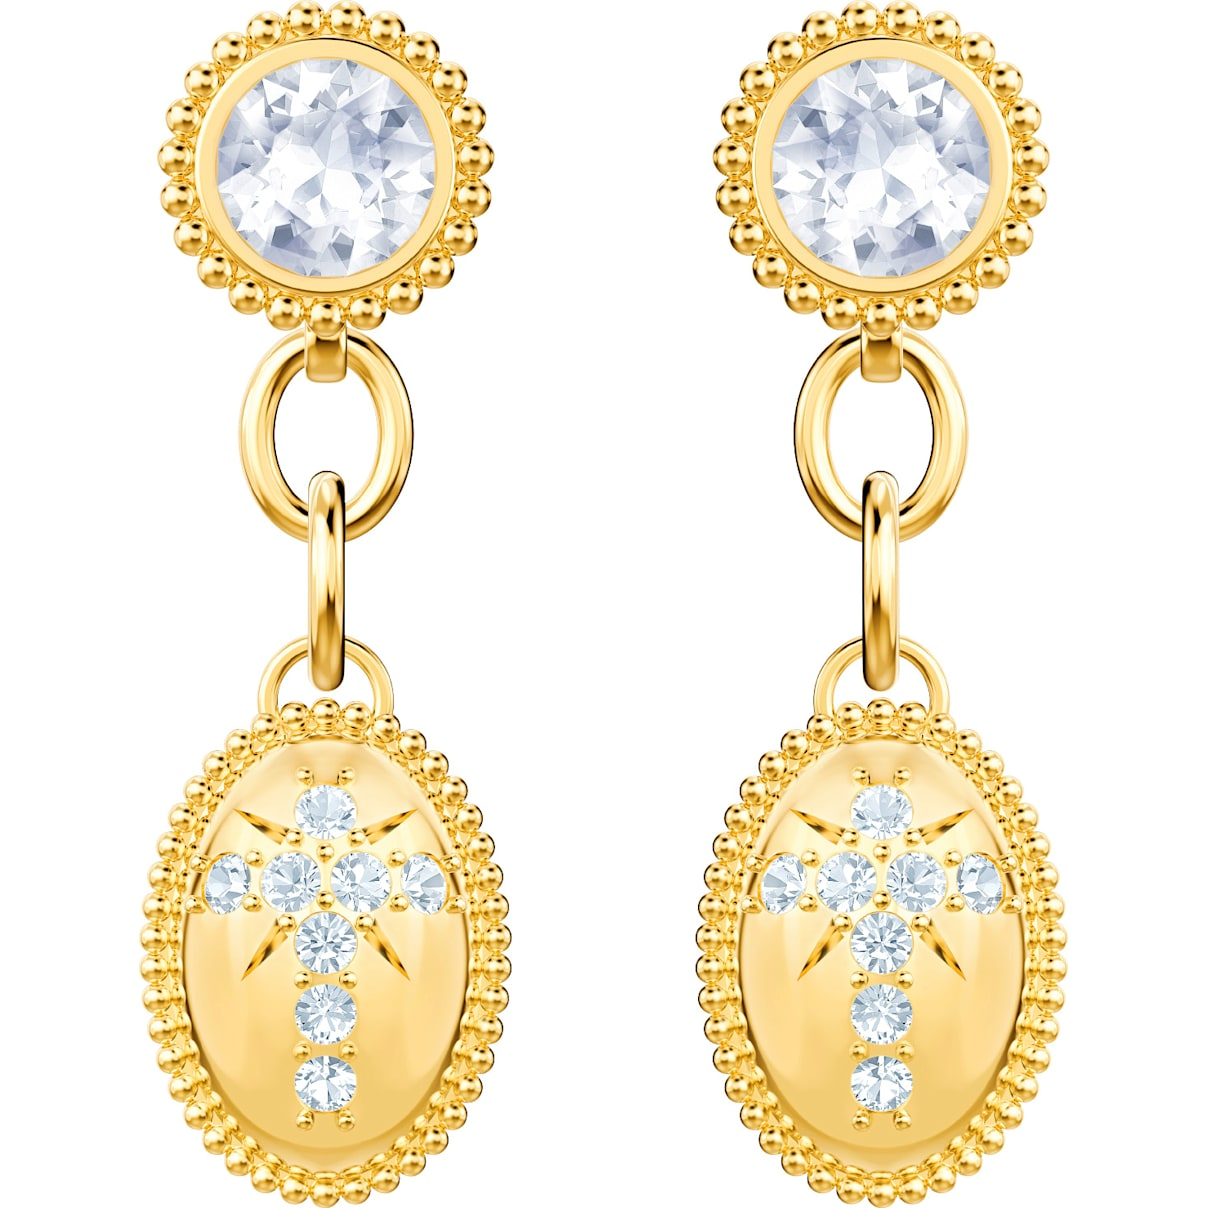 Swarovski Magnetic Pierced Earrings, White, Gold-tone plated